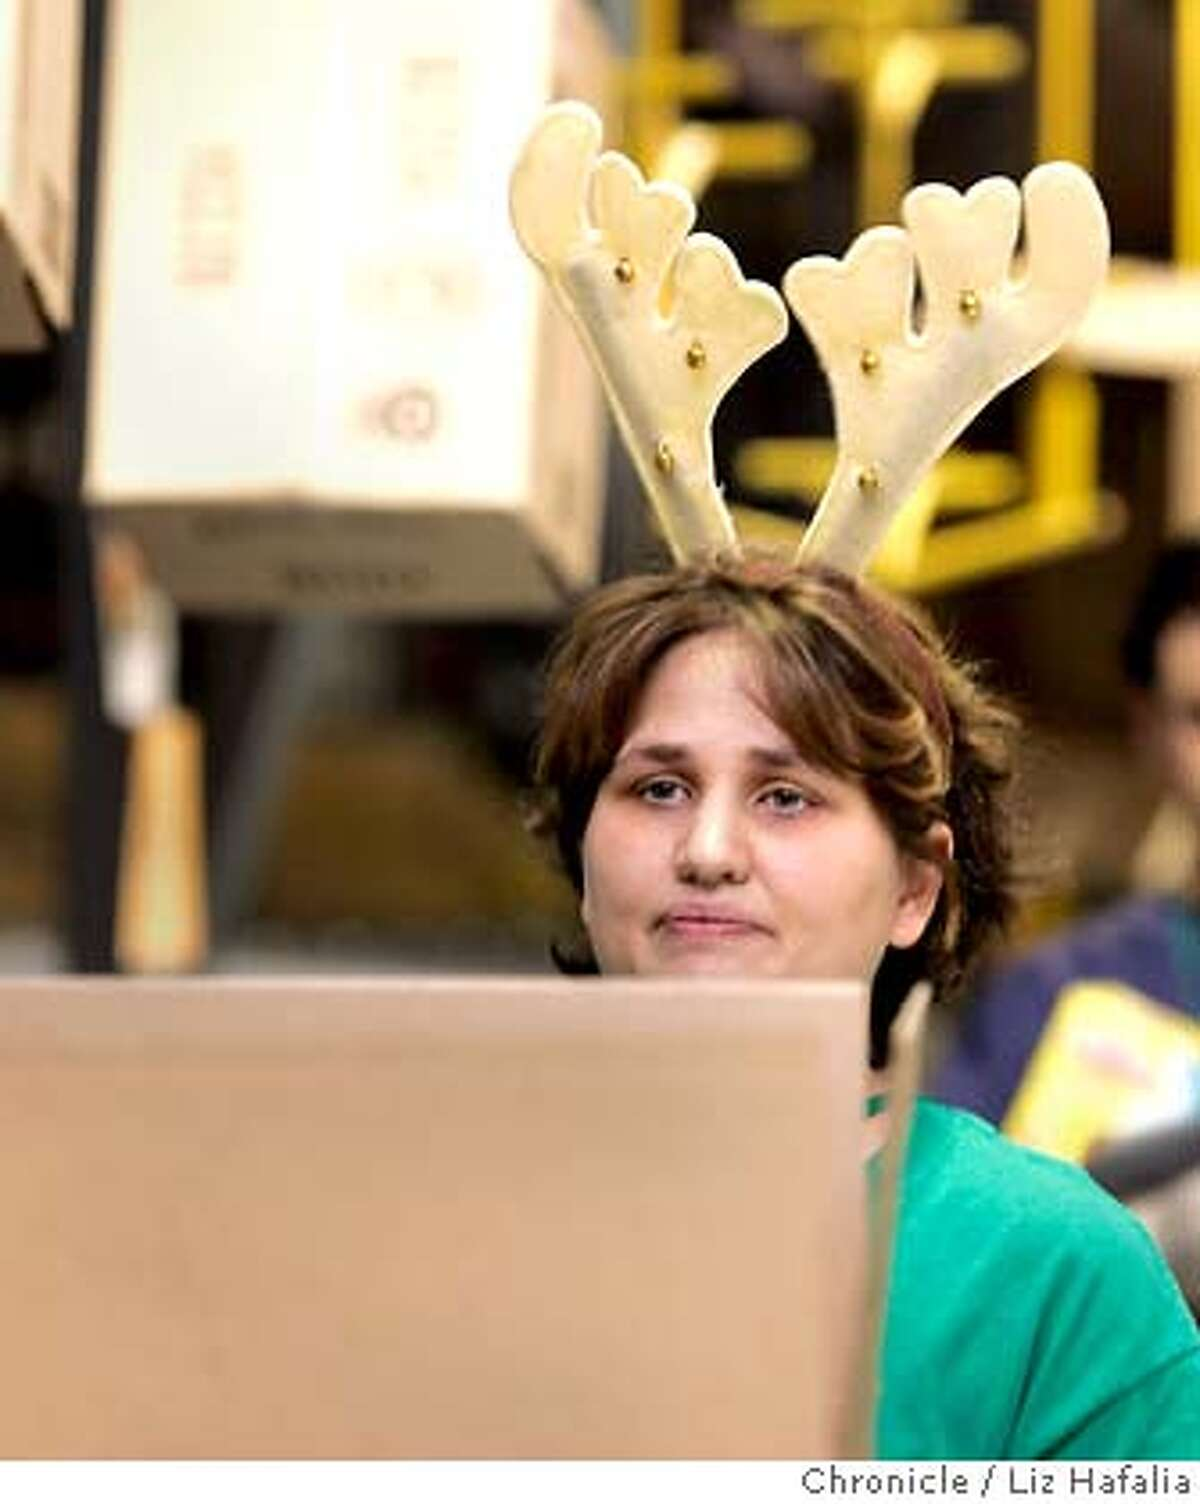 The Amazon.com distribution center in Fernley, NV, during its peak hoilday shopping season. Julie Gerbeler waiting for merchandise to box . Shot on 12/15/04 in Fernley. LIZ HAFALIA/The Chronicle